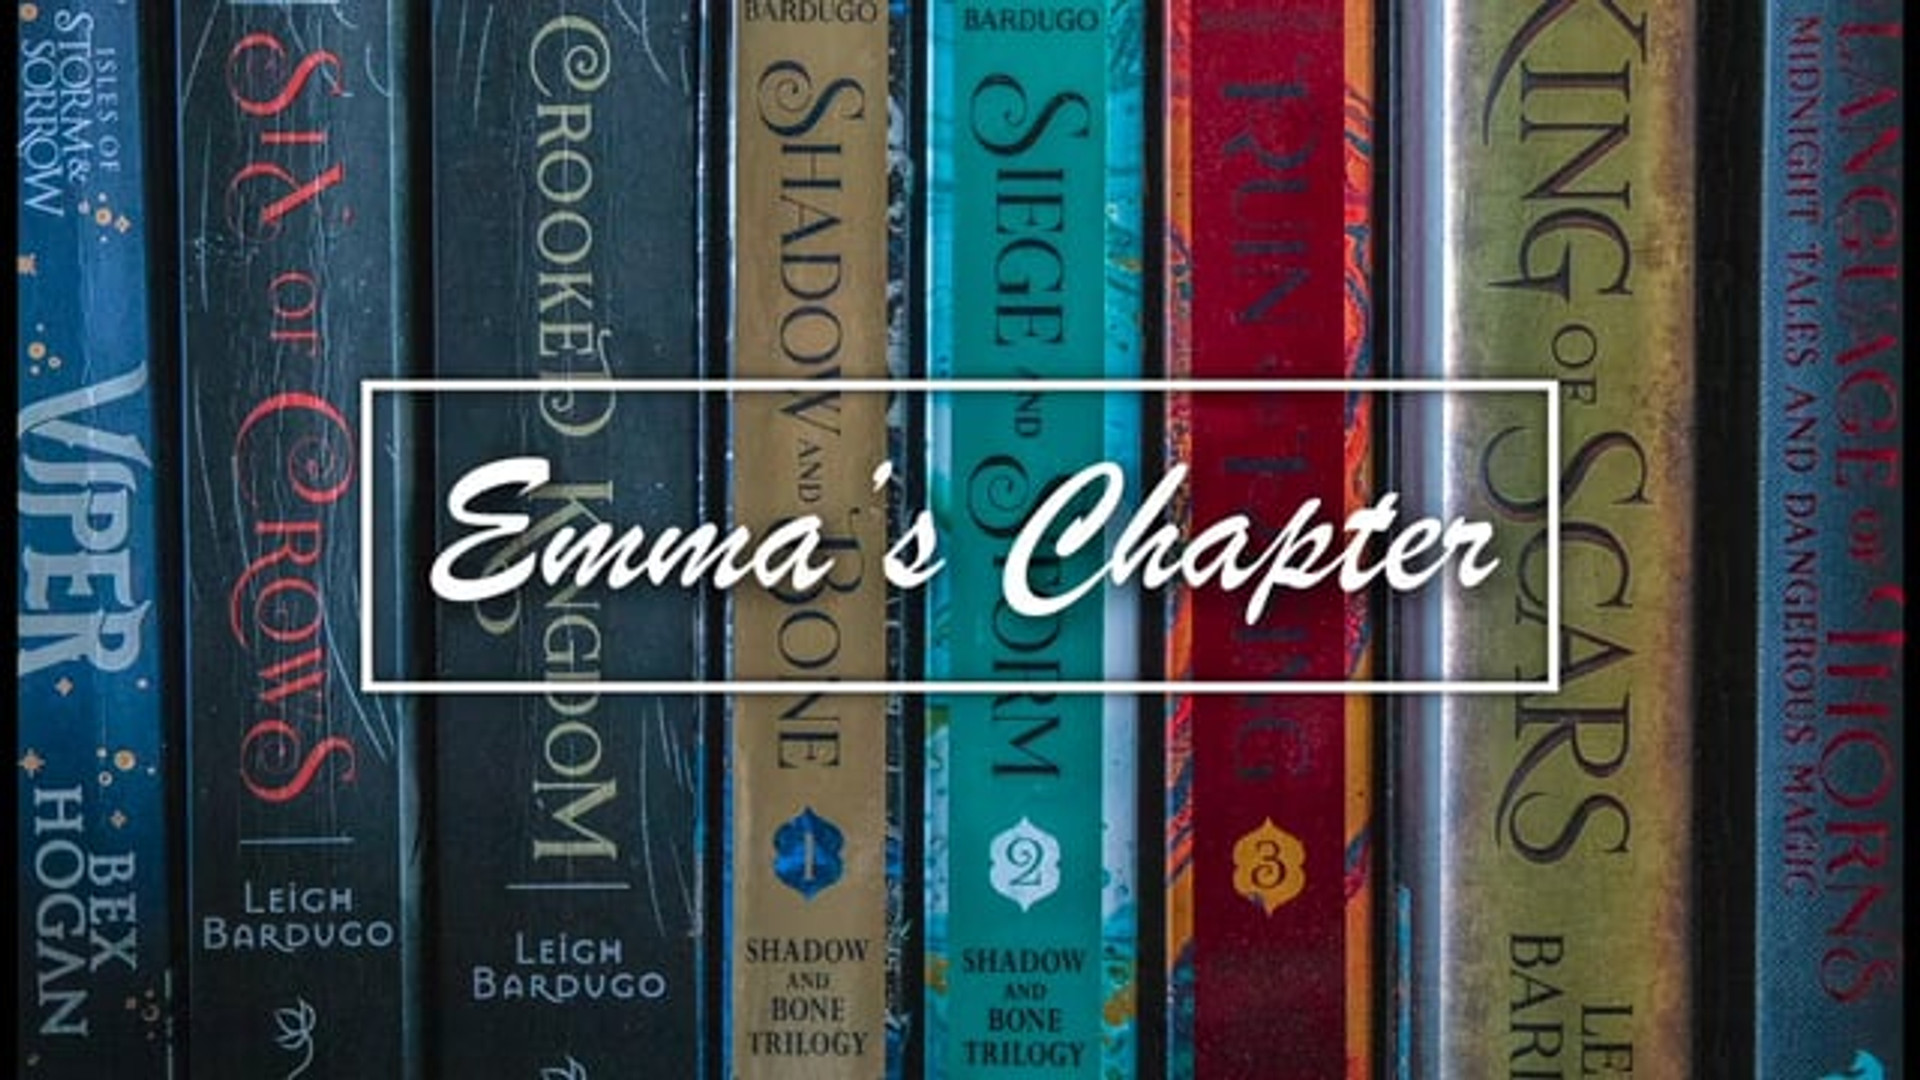 Emma's Chapter